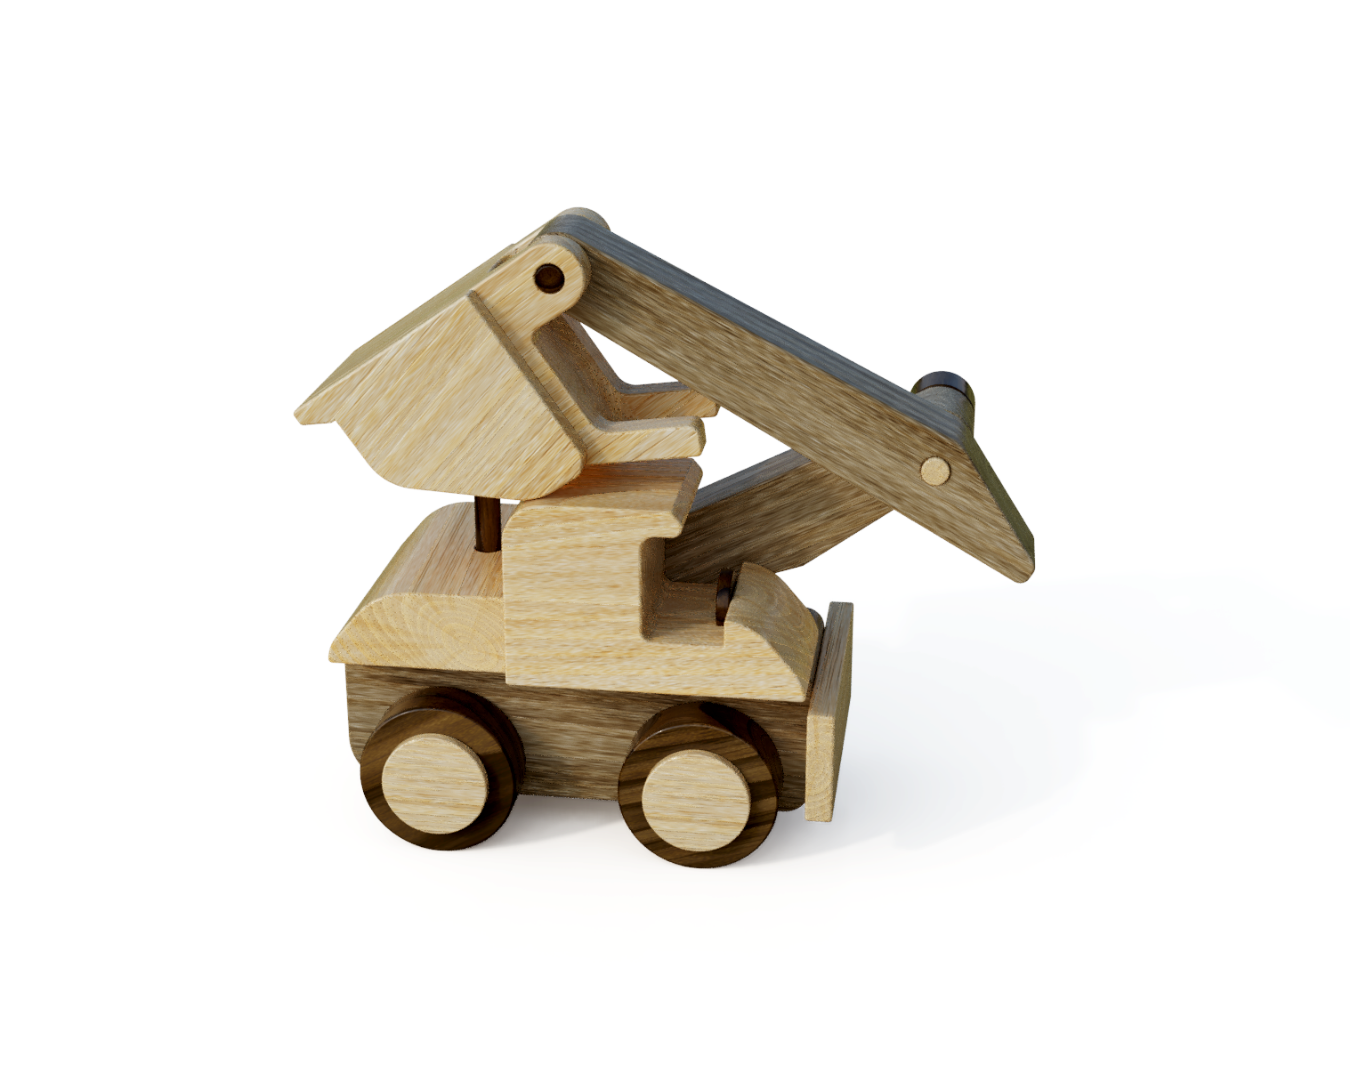 004 Wood Toy Power Shovel 05-19-2019.png